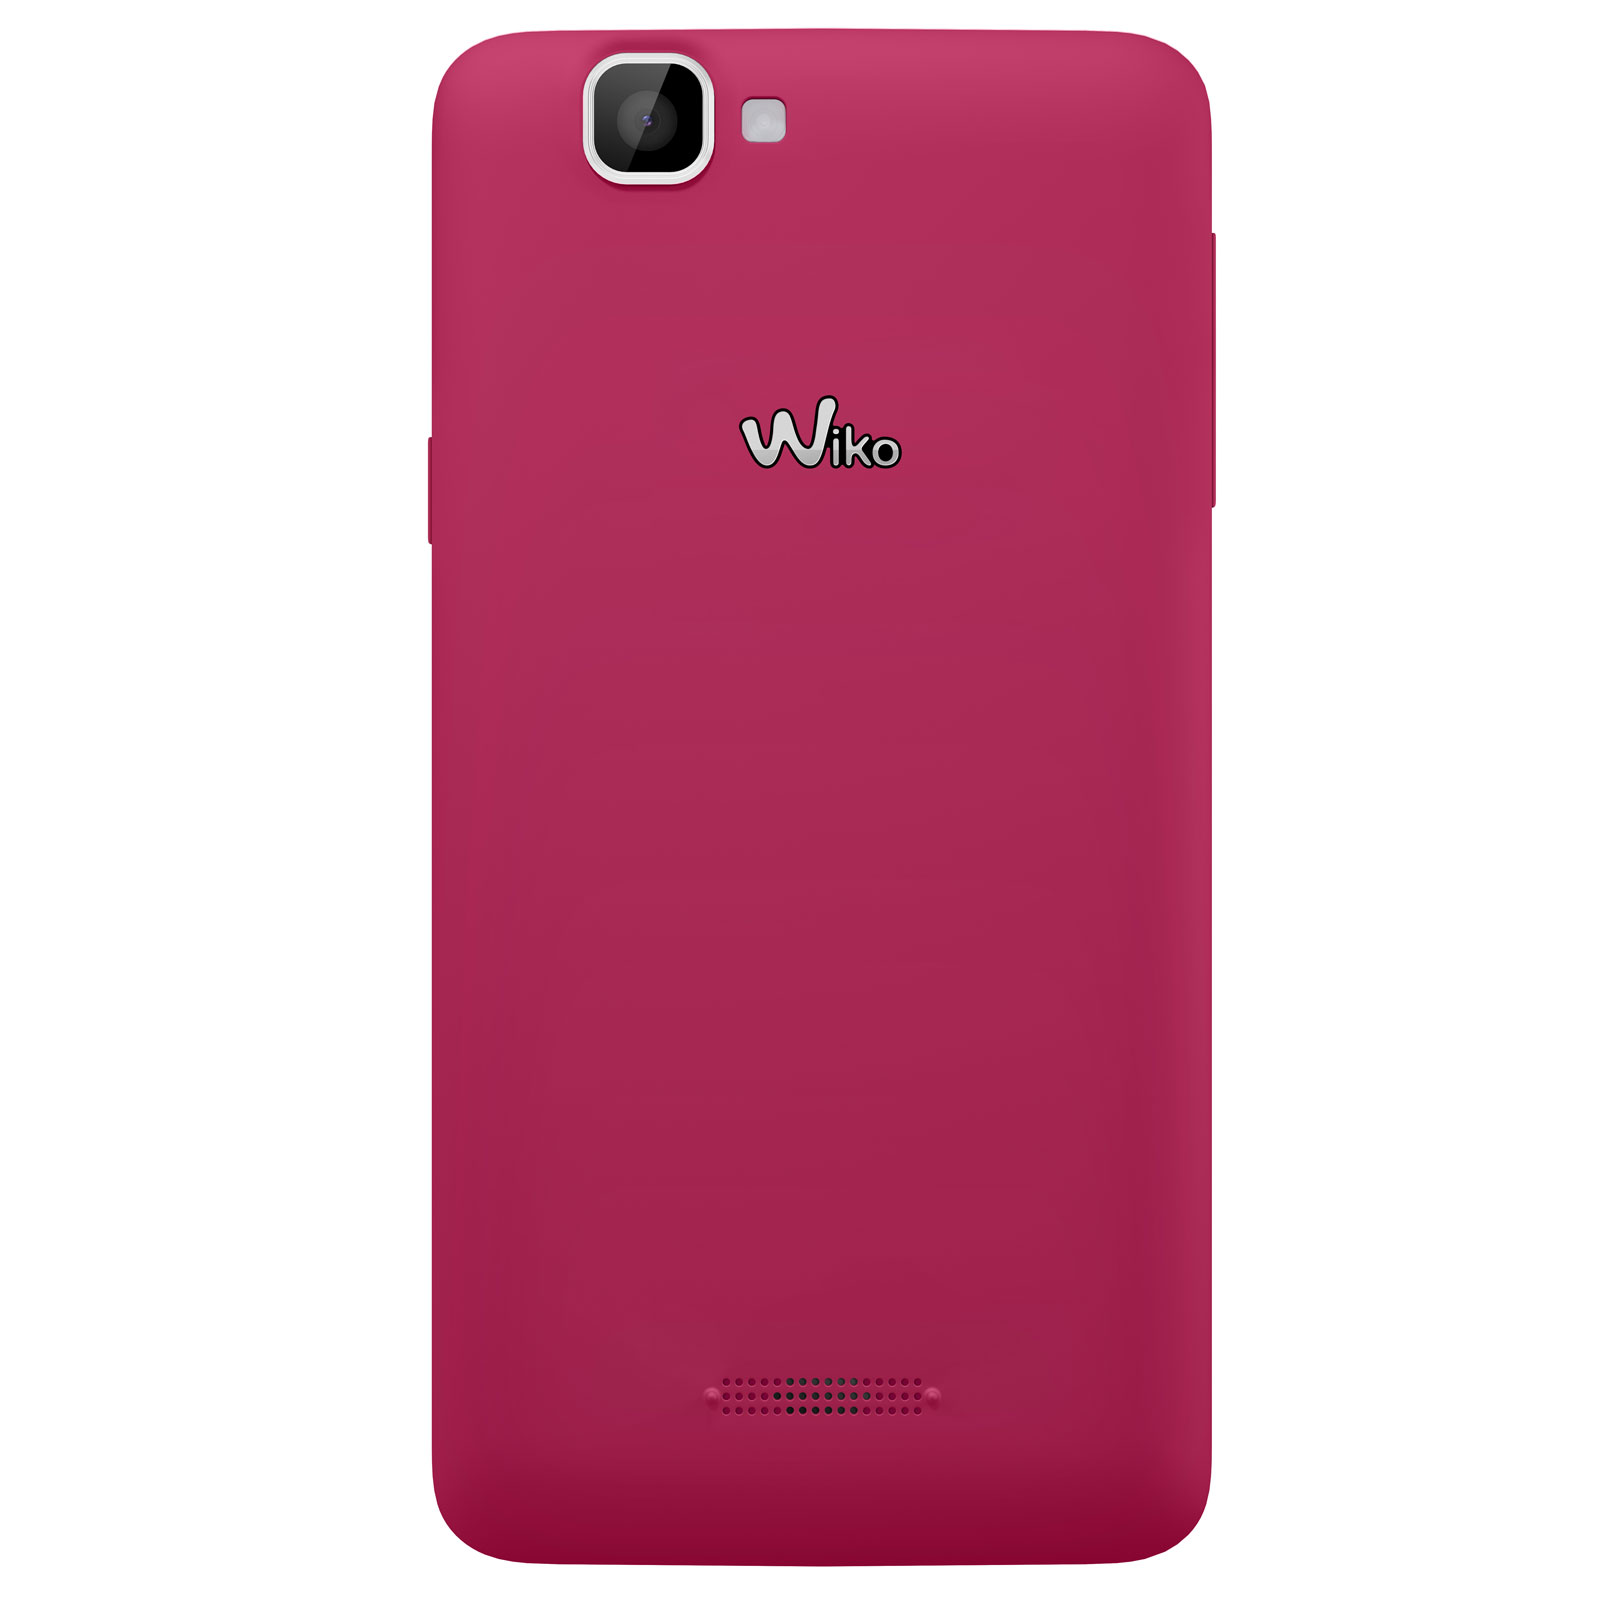 wiko rainbow fuschia mobile smartphone wiko sur. Black Bedroom Furniture Sets. Home Design Ideas